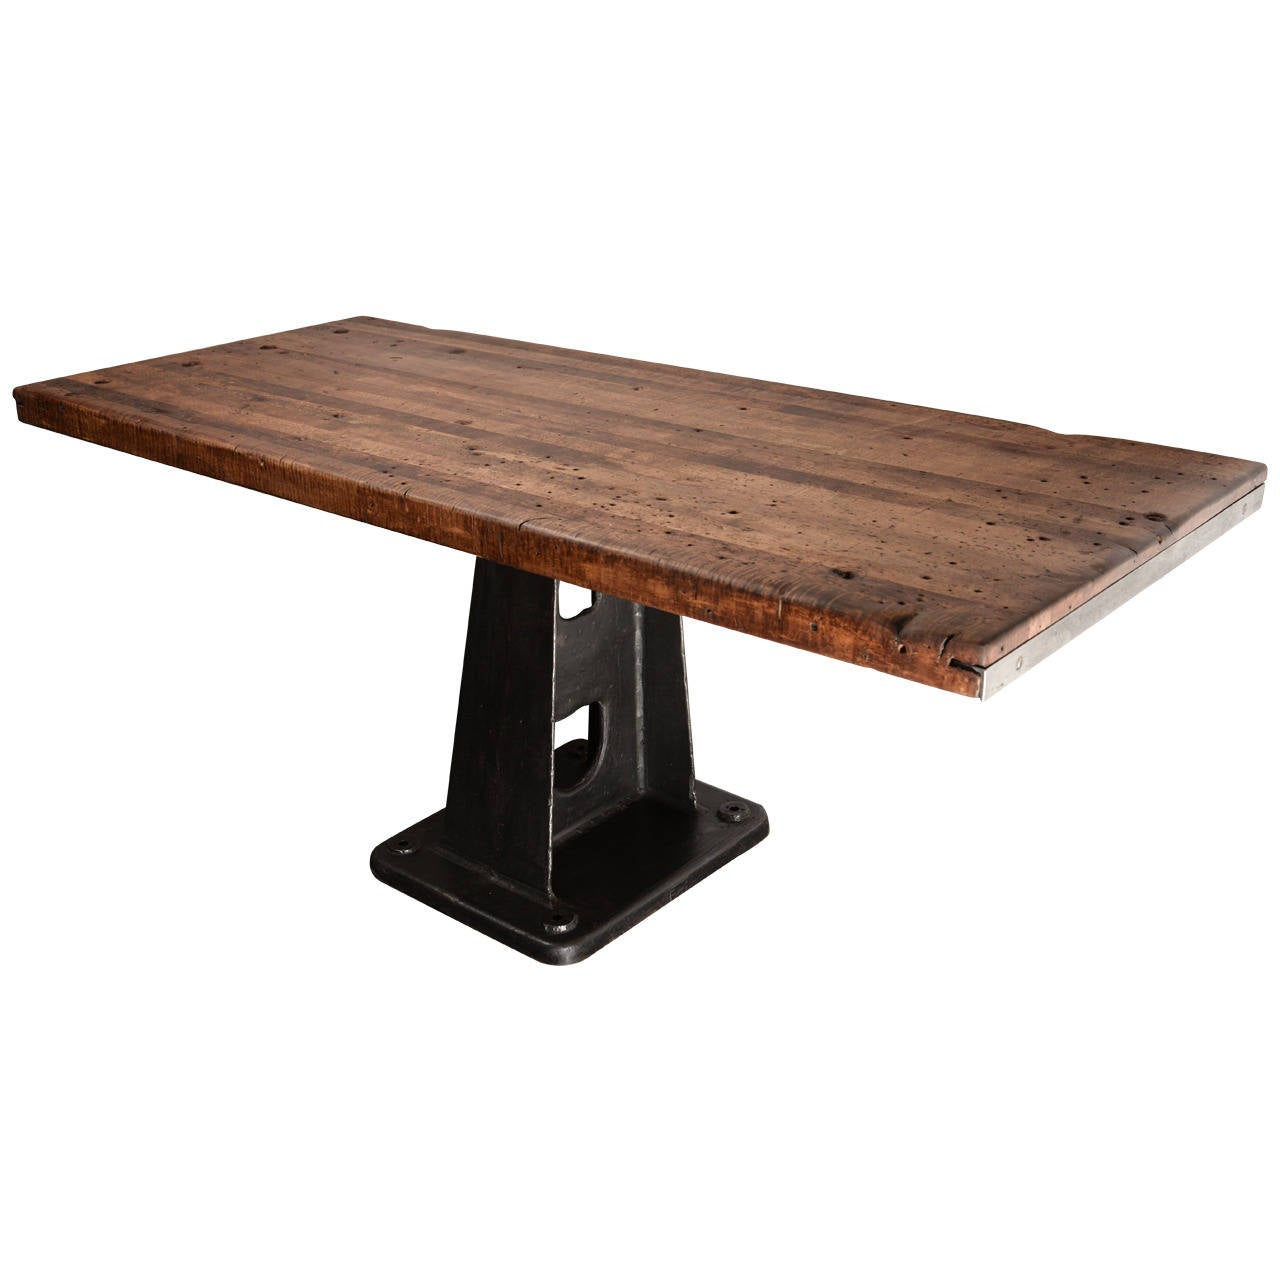 Industrial console table at 1stdibs for 1 1 table